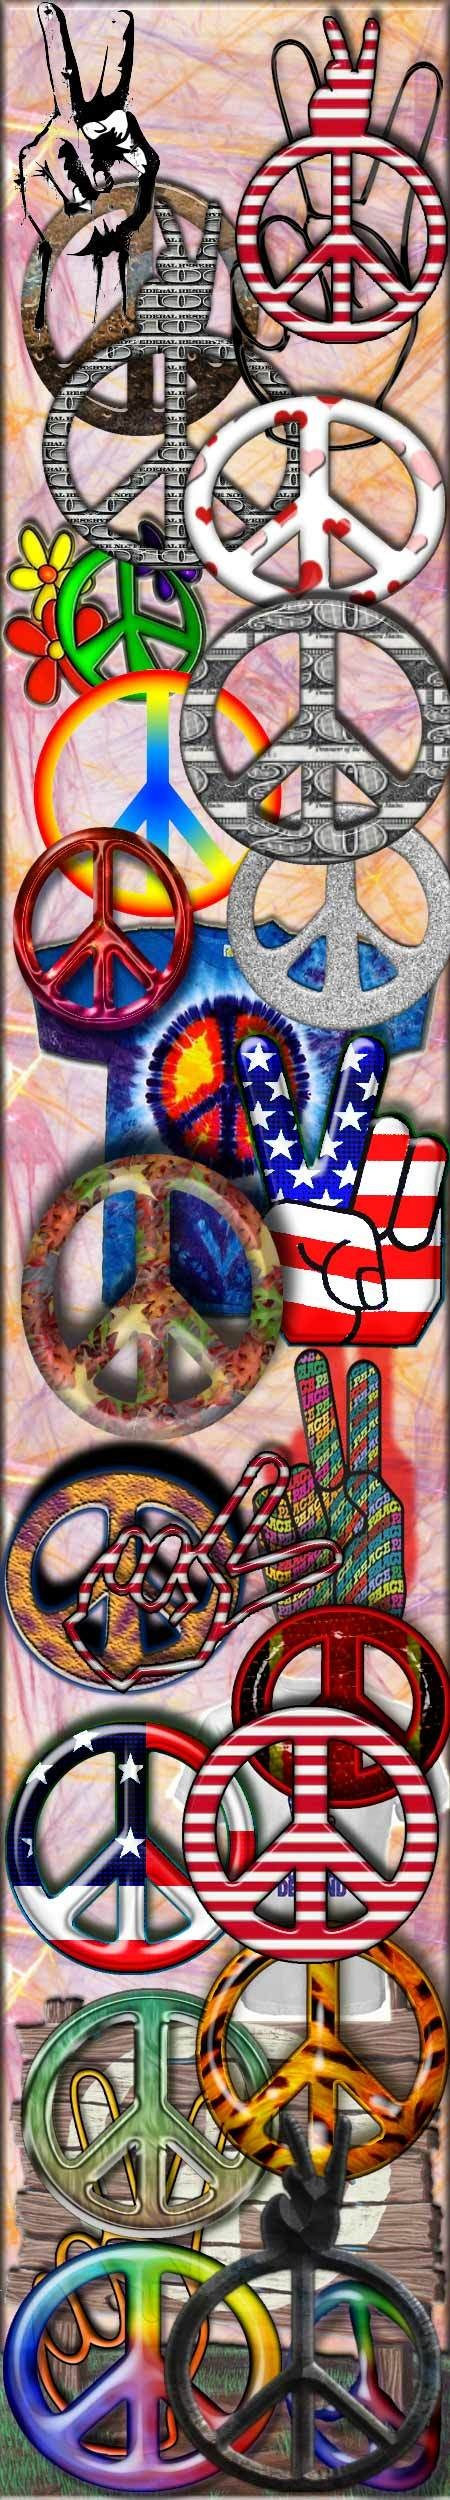 This picture is clear because everyone knows that its a peace sign or symbol. It is usually a hippy or anti violence symbol.